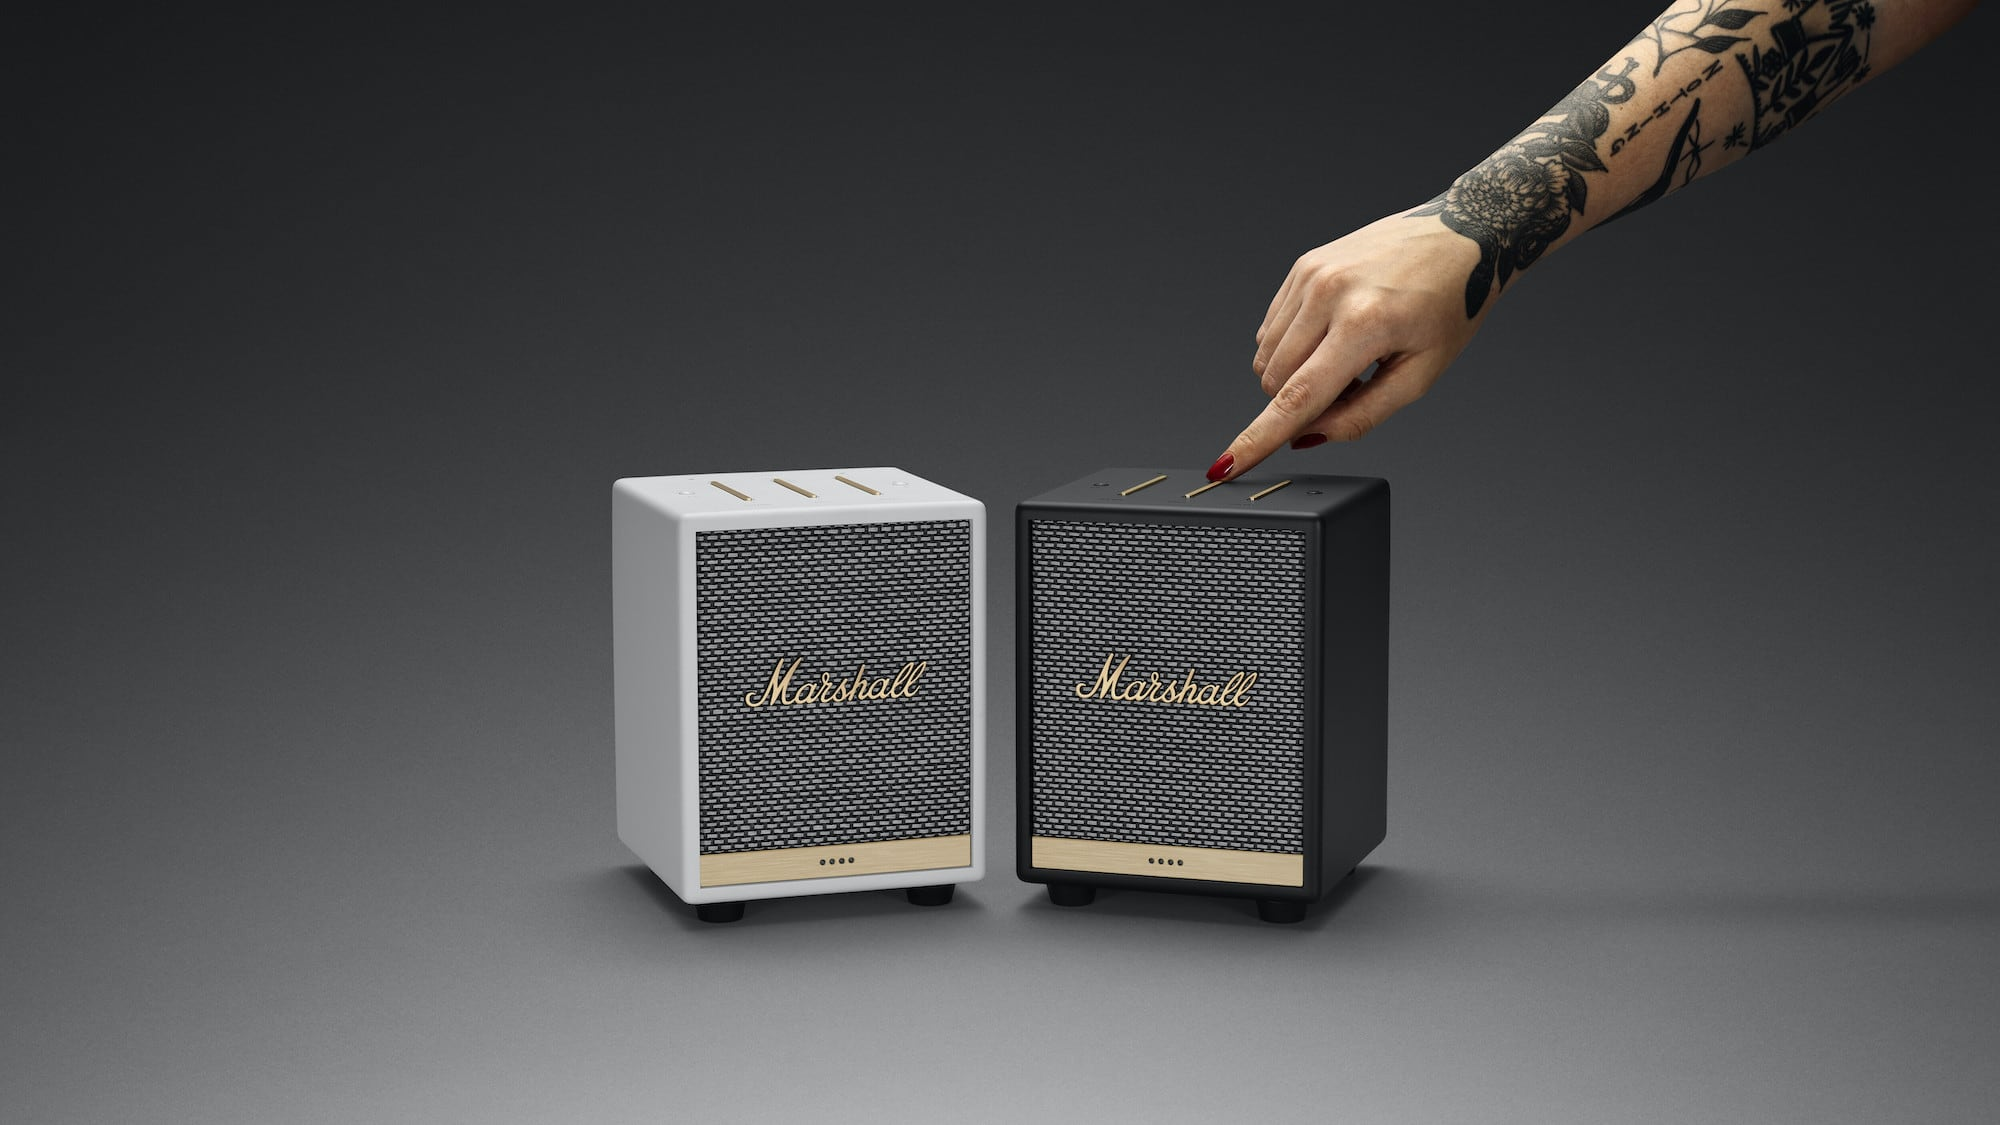 Marshall Uxbridge Voice Compact Alexa Speaker lets you multitask completely hands-free